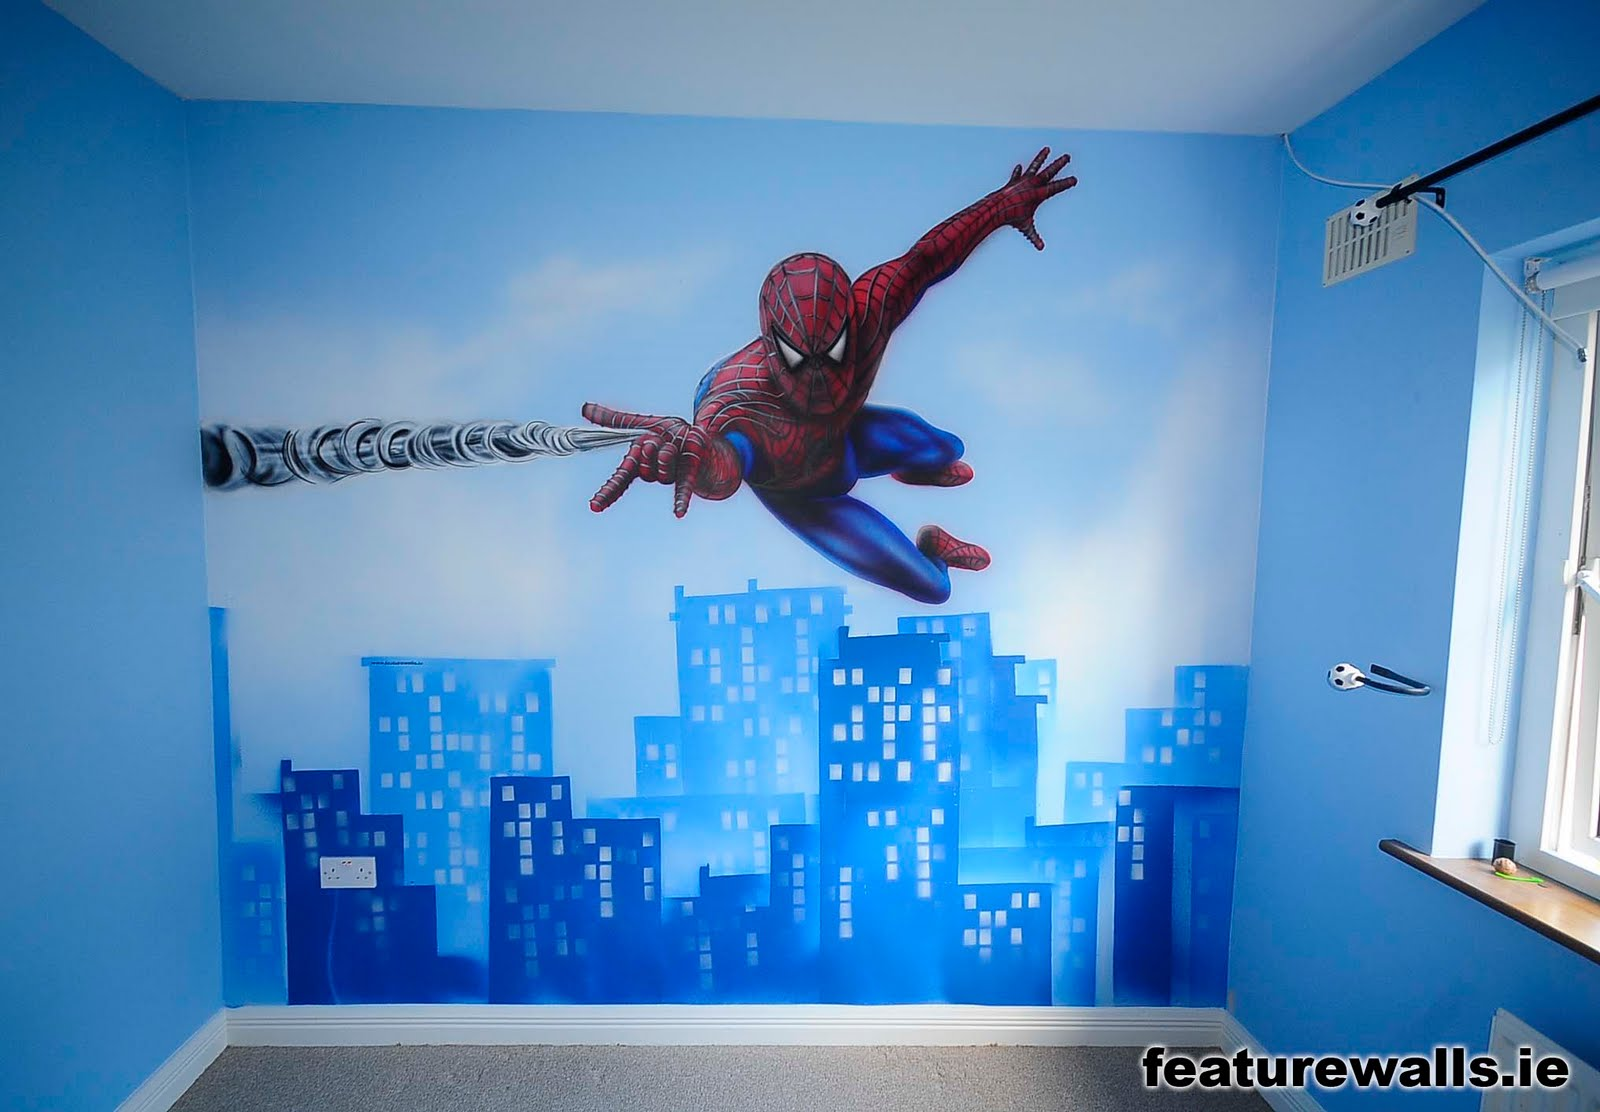 Kids bedroom painting ideas wallpress 1080p hd desktop for Children wall mural ideas